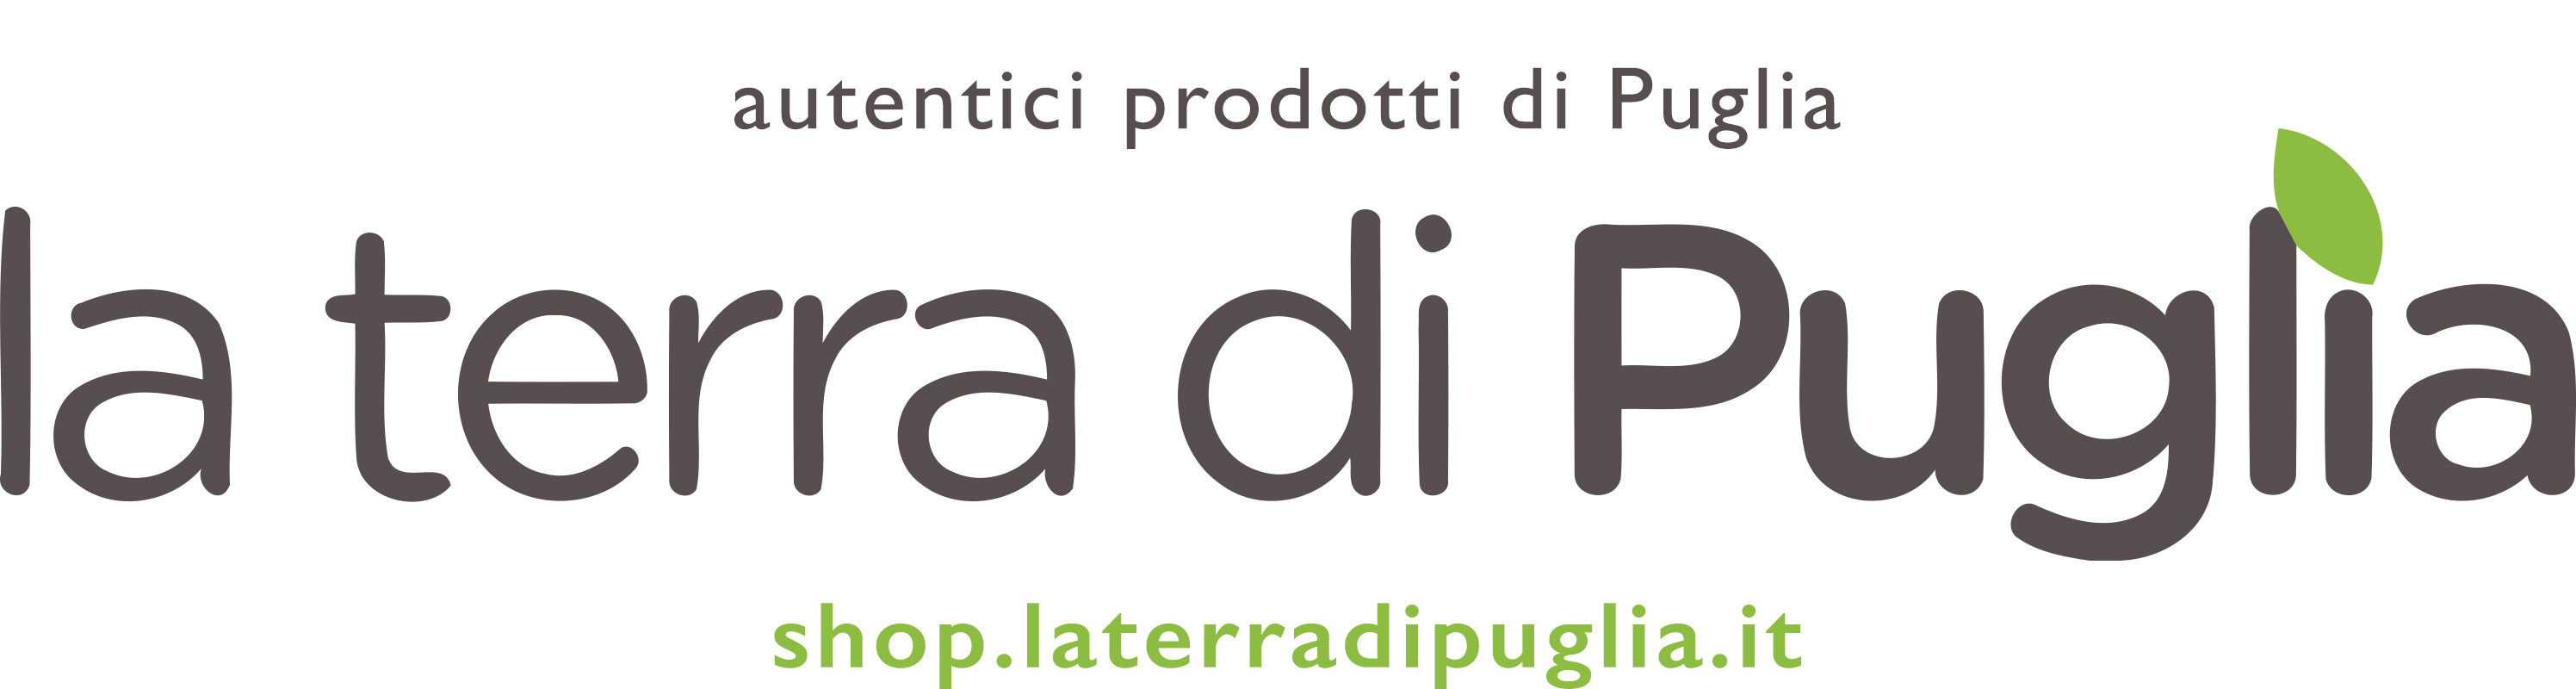 LaTerradiPuglia.it